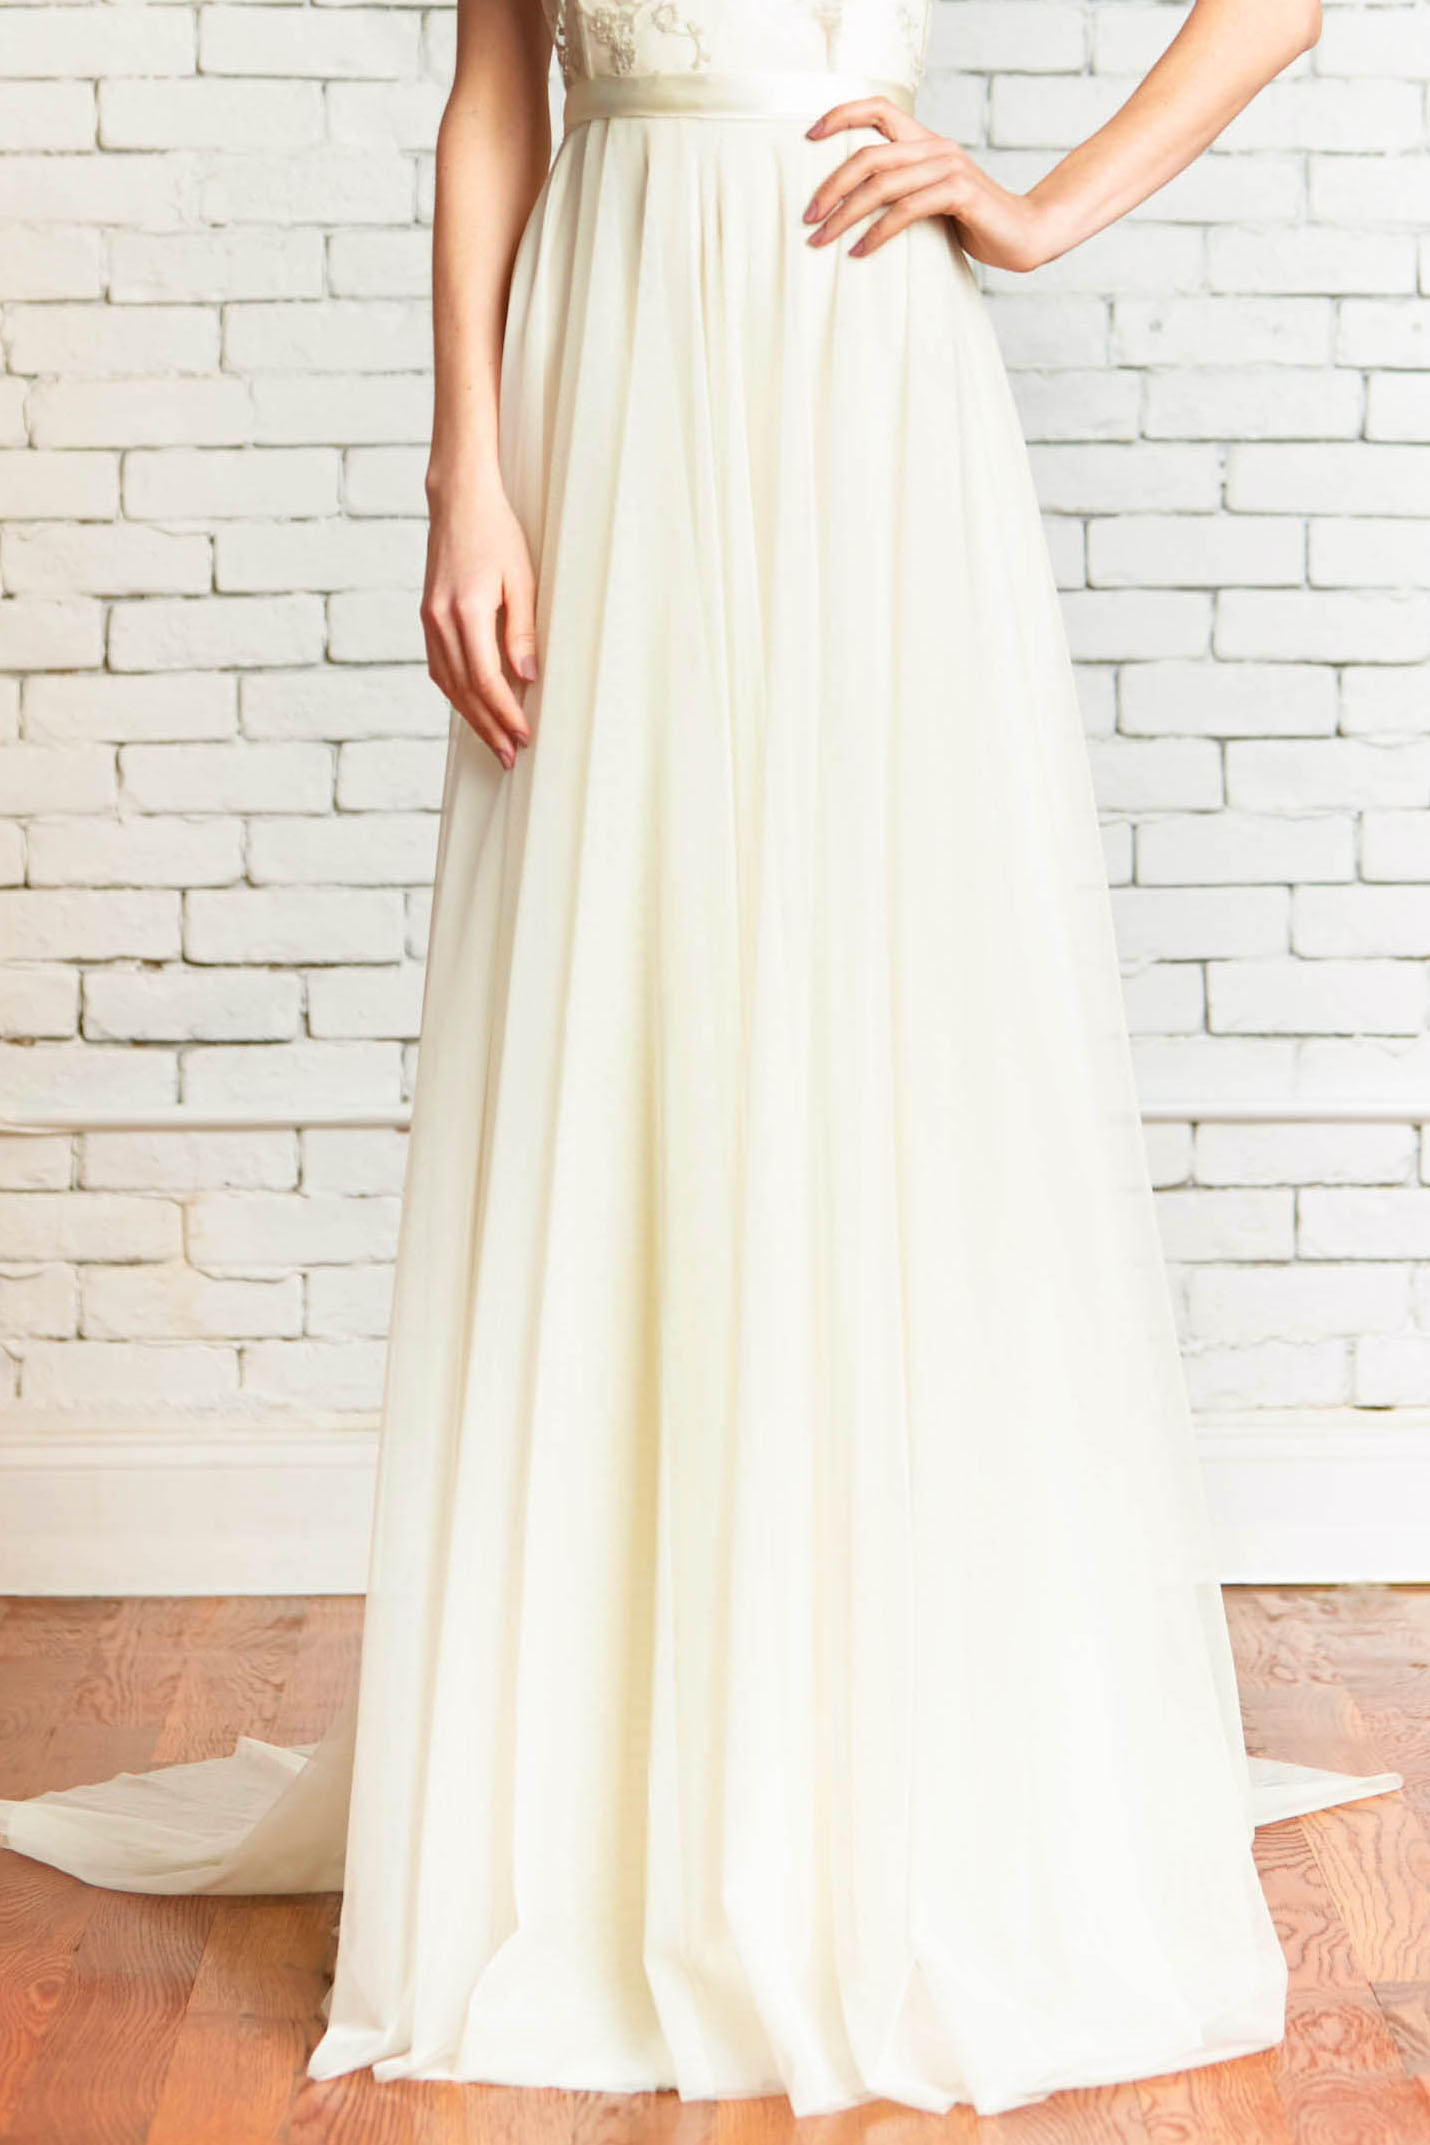 Serenity-Skirt-front_Layered_Bridal_Removable_Tulle_Separates.jpg